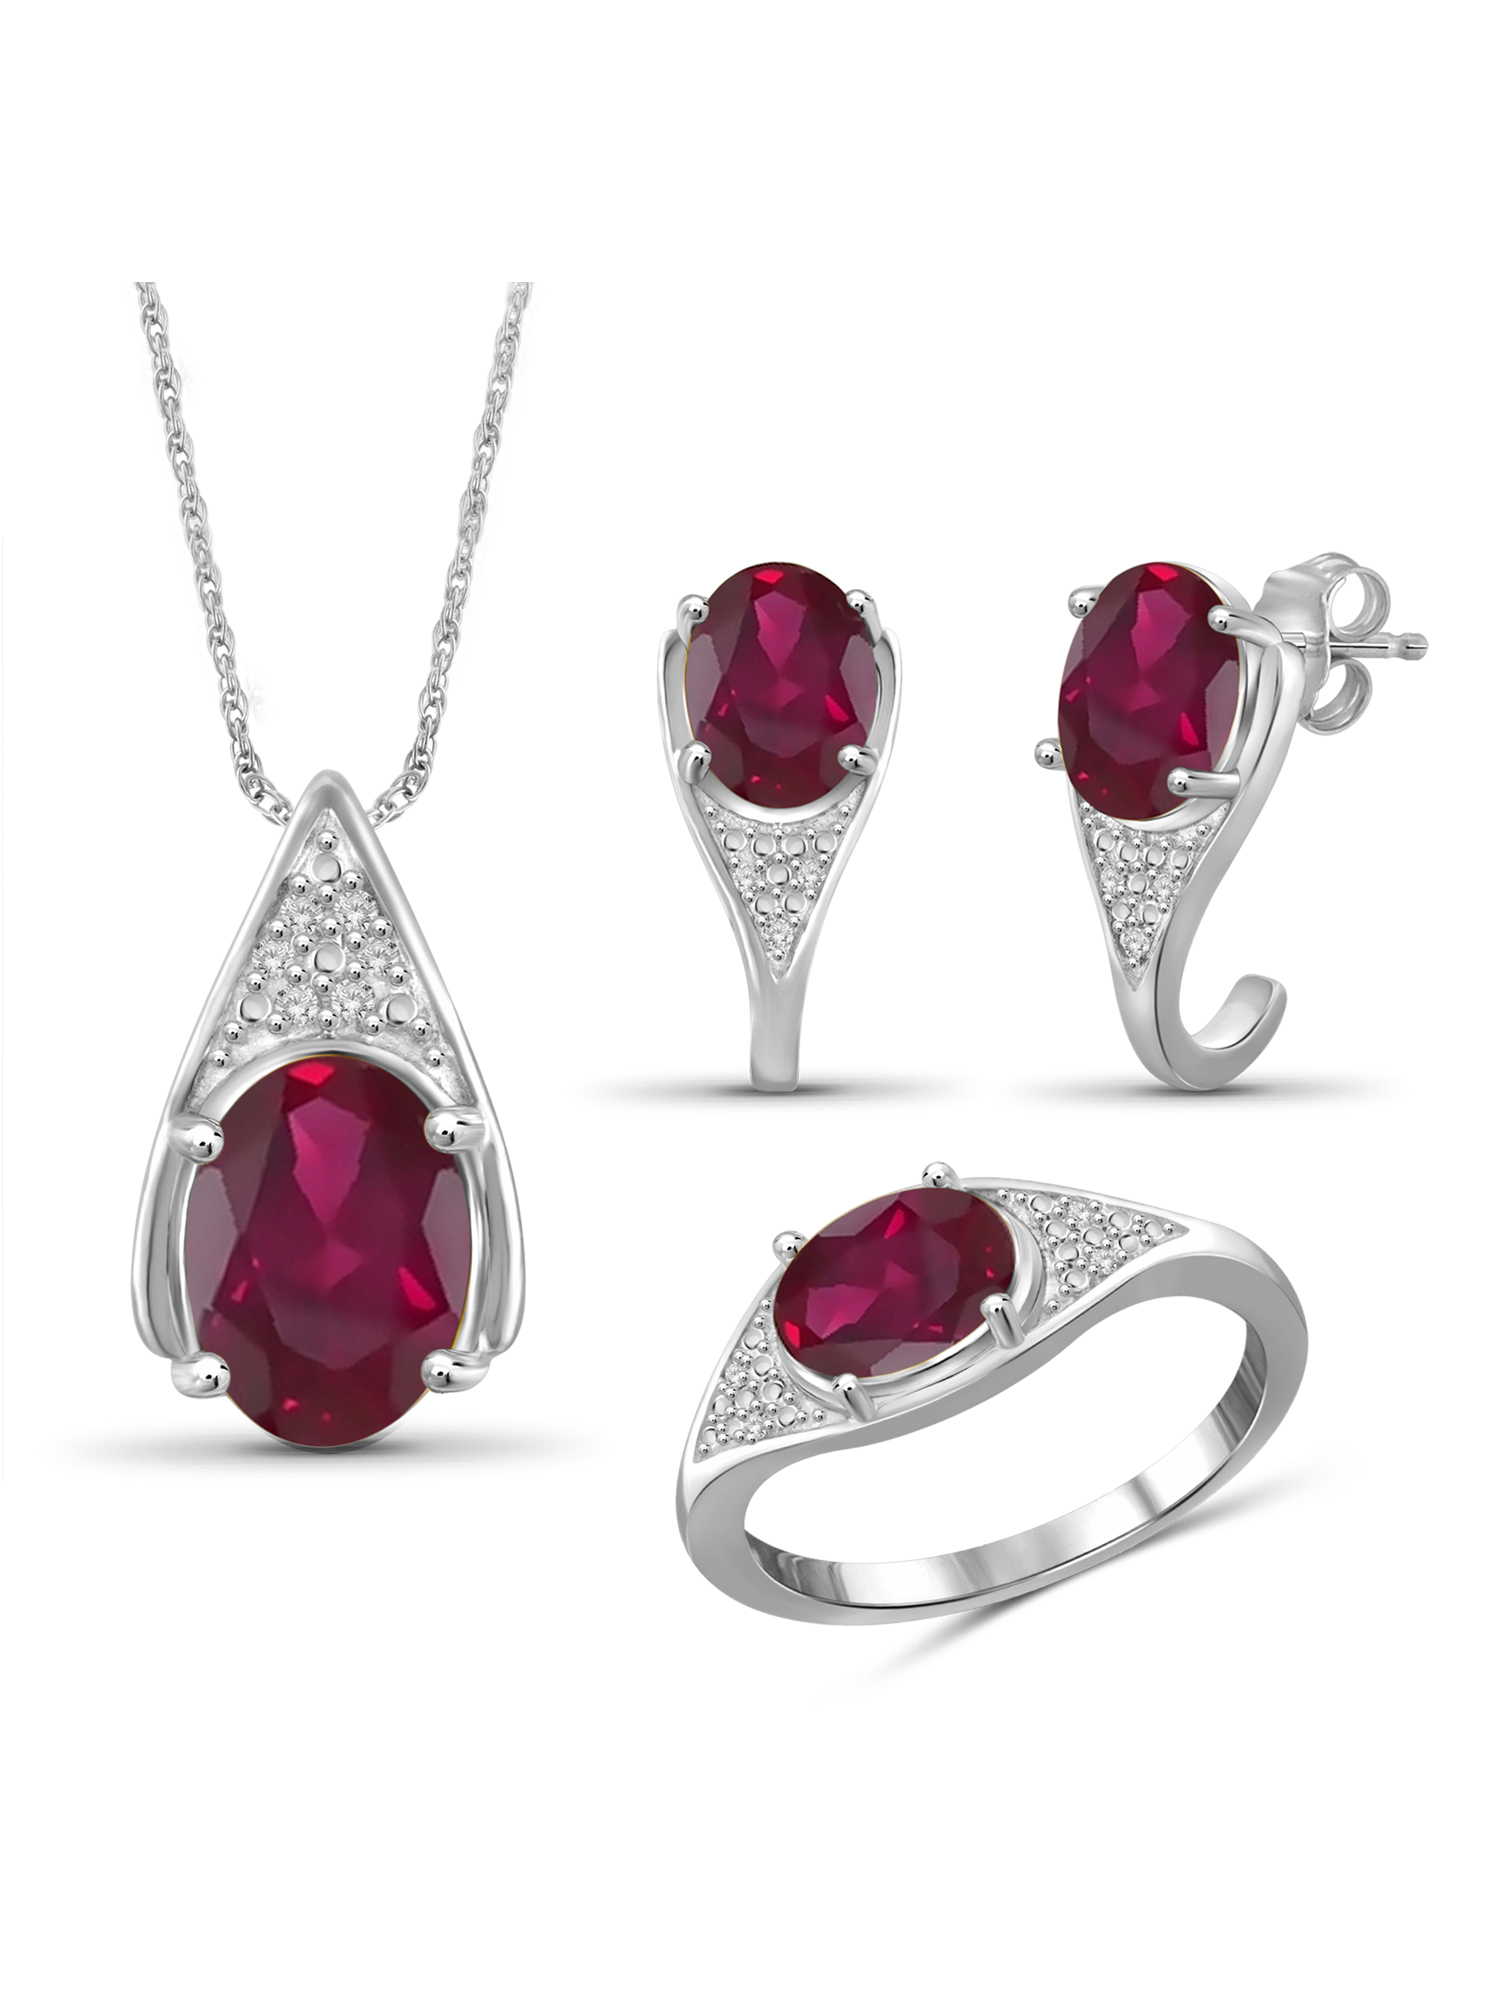 JewelersClub 7 3 4 Carat T.G.W. Ruby And White Diamond Accent Sterling Silver 3-Piece Jewelry set by JewelersClub